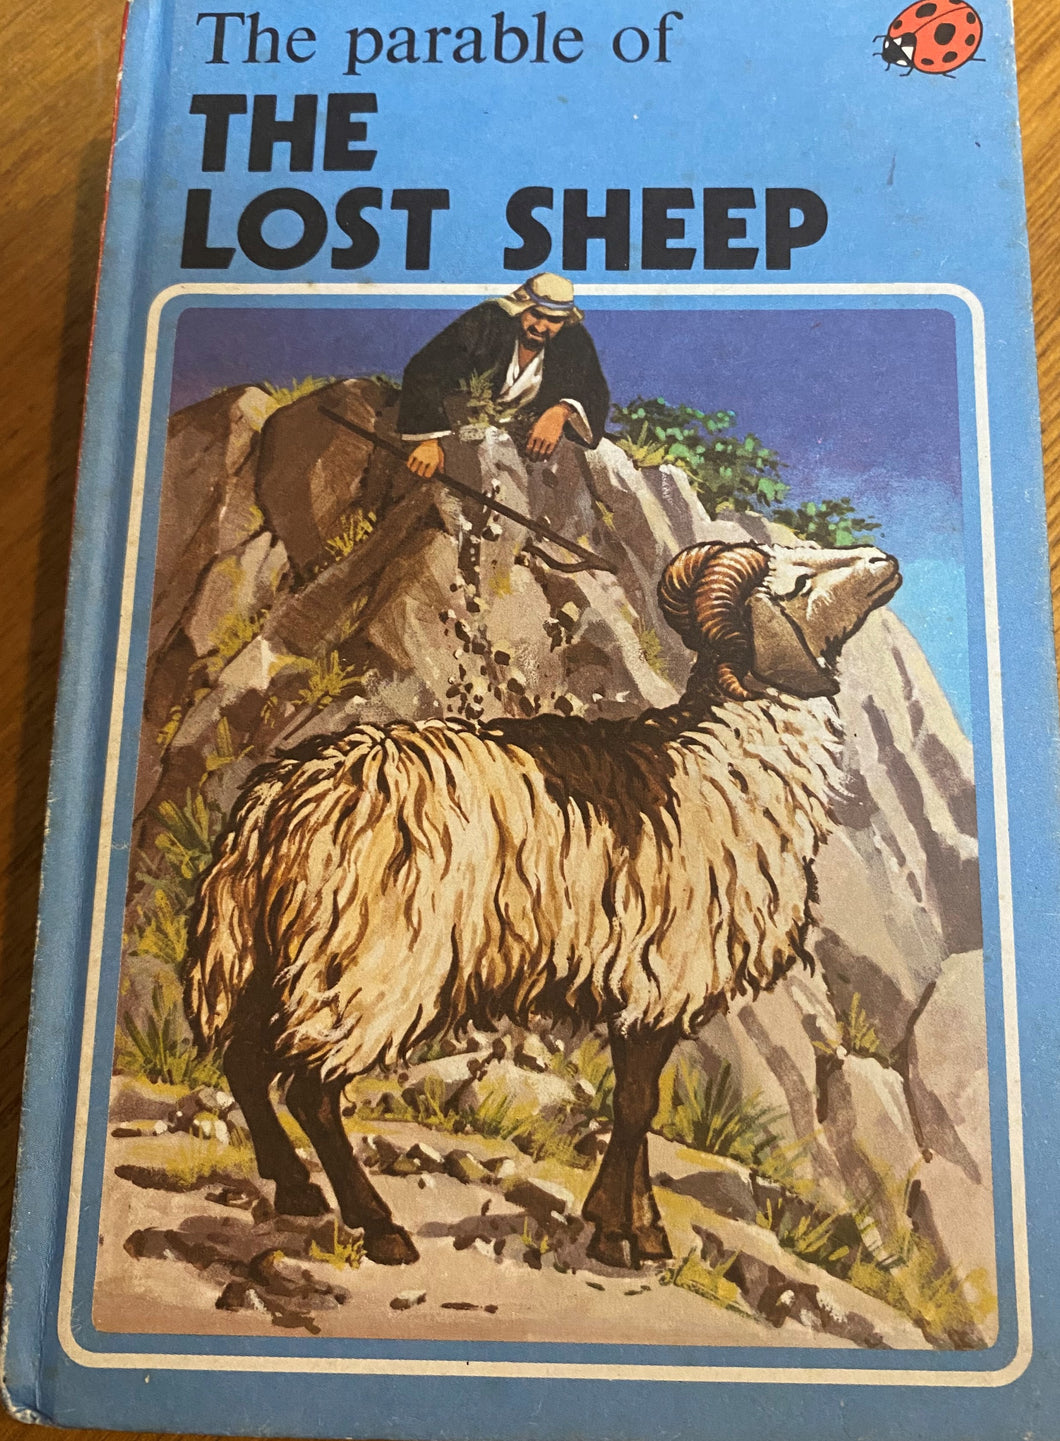 The Parable of the Lost Sheep (1 January 1981 - 30 June 1982)